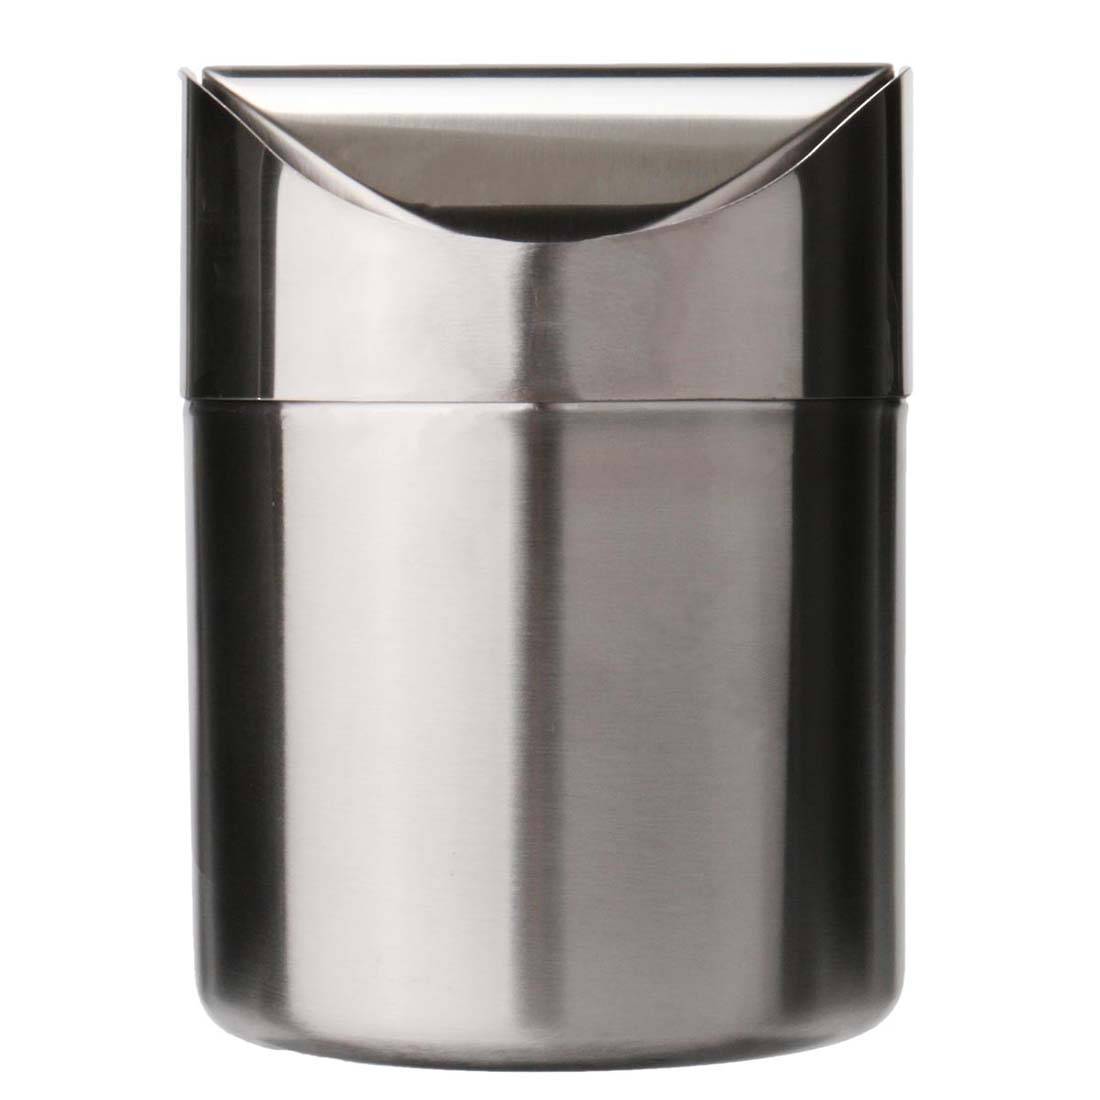 Stainless Steel 1.5L Mini Worktop Kitchen Waste Dust Bin Rubbish With Swing Lid Silver ...